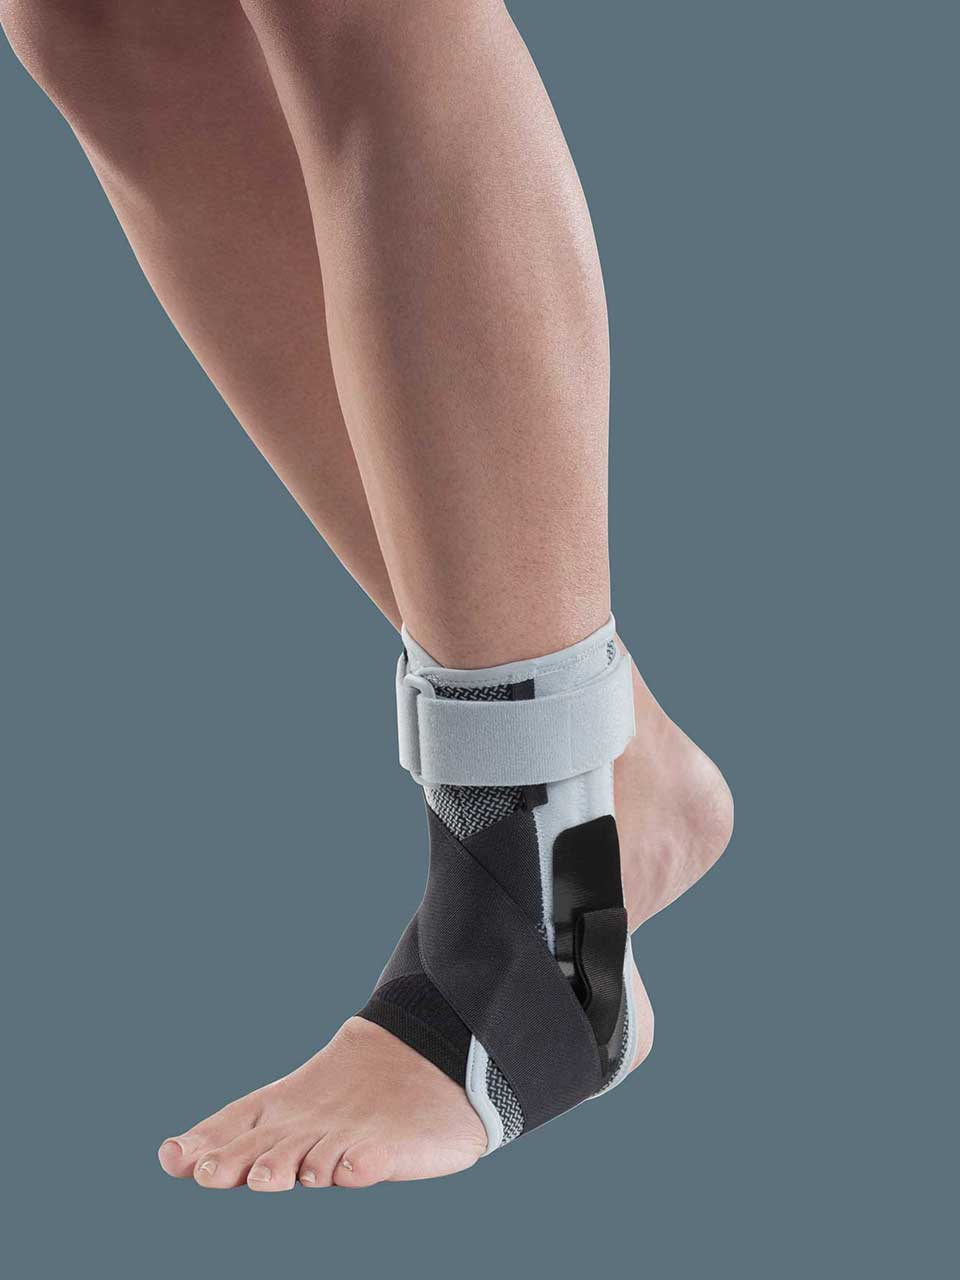 MALLEOSKILL 81 - Ankle support